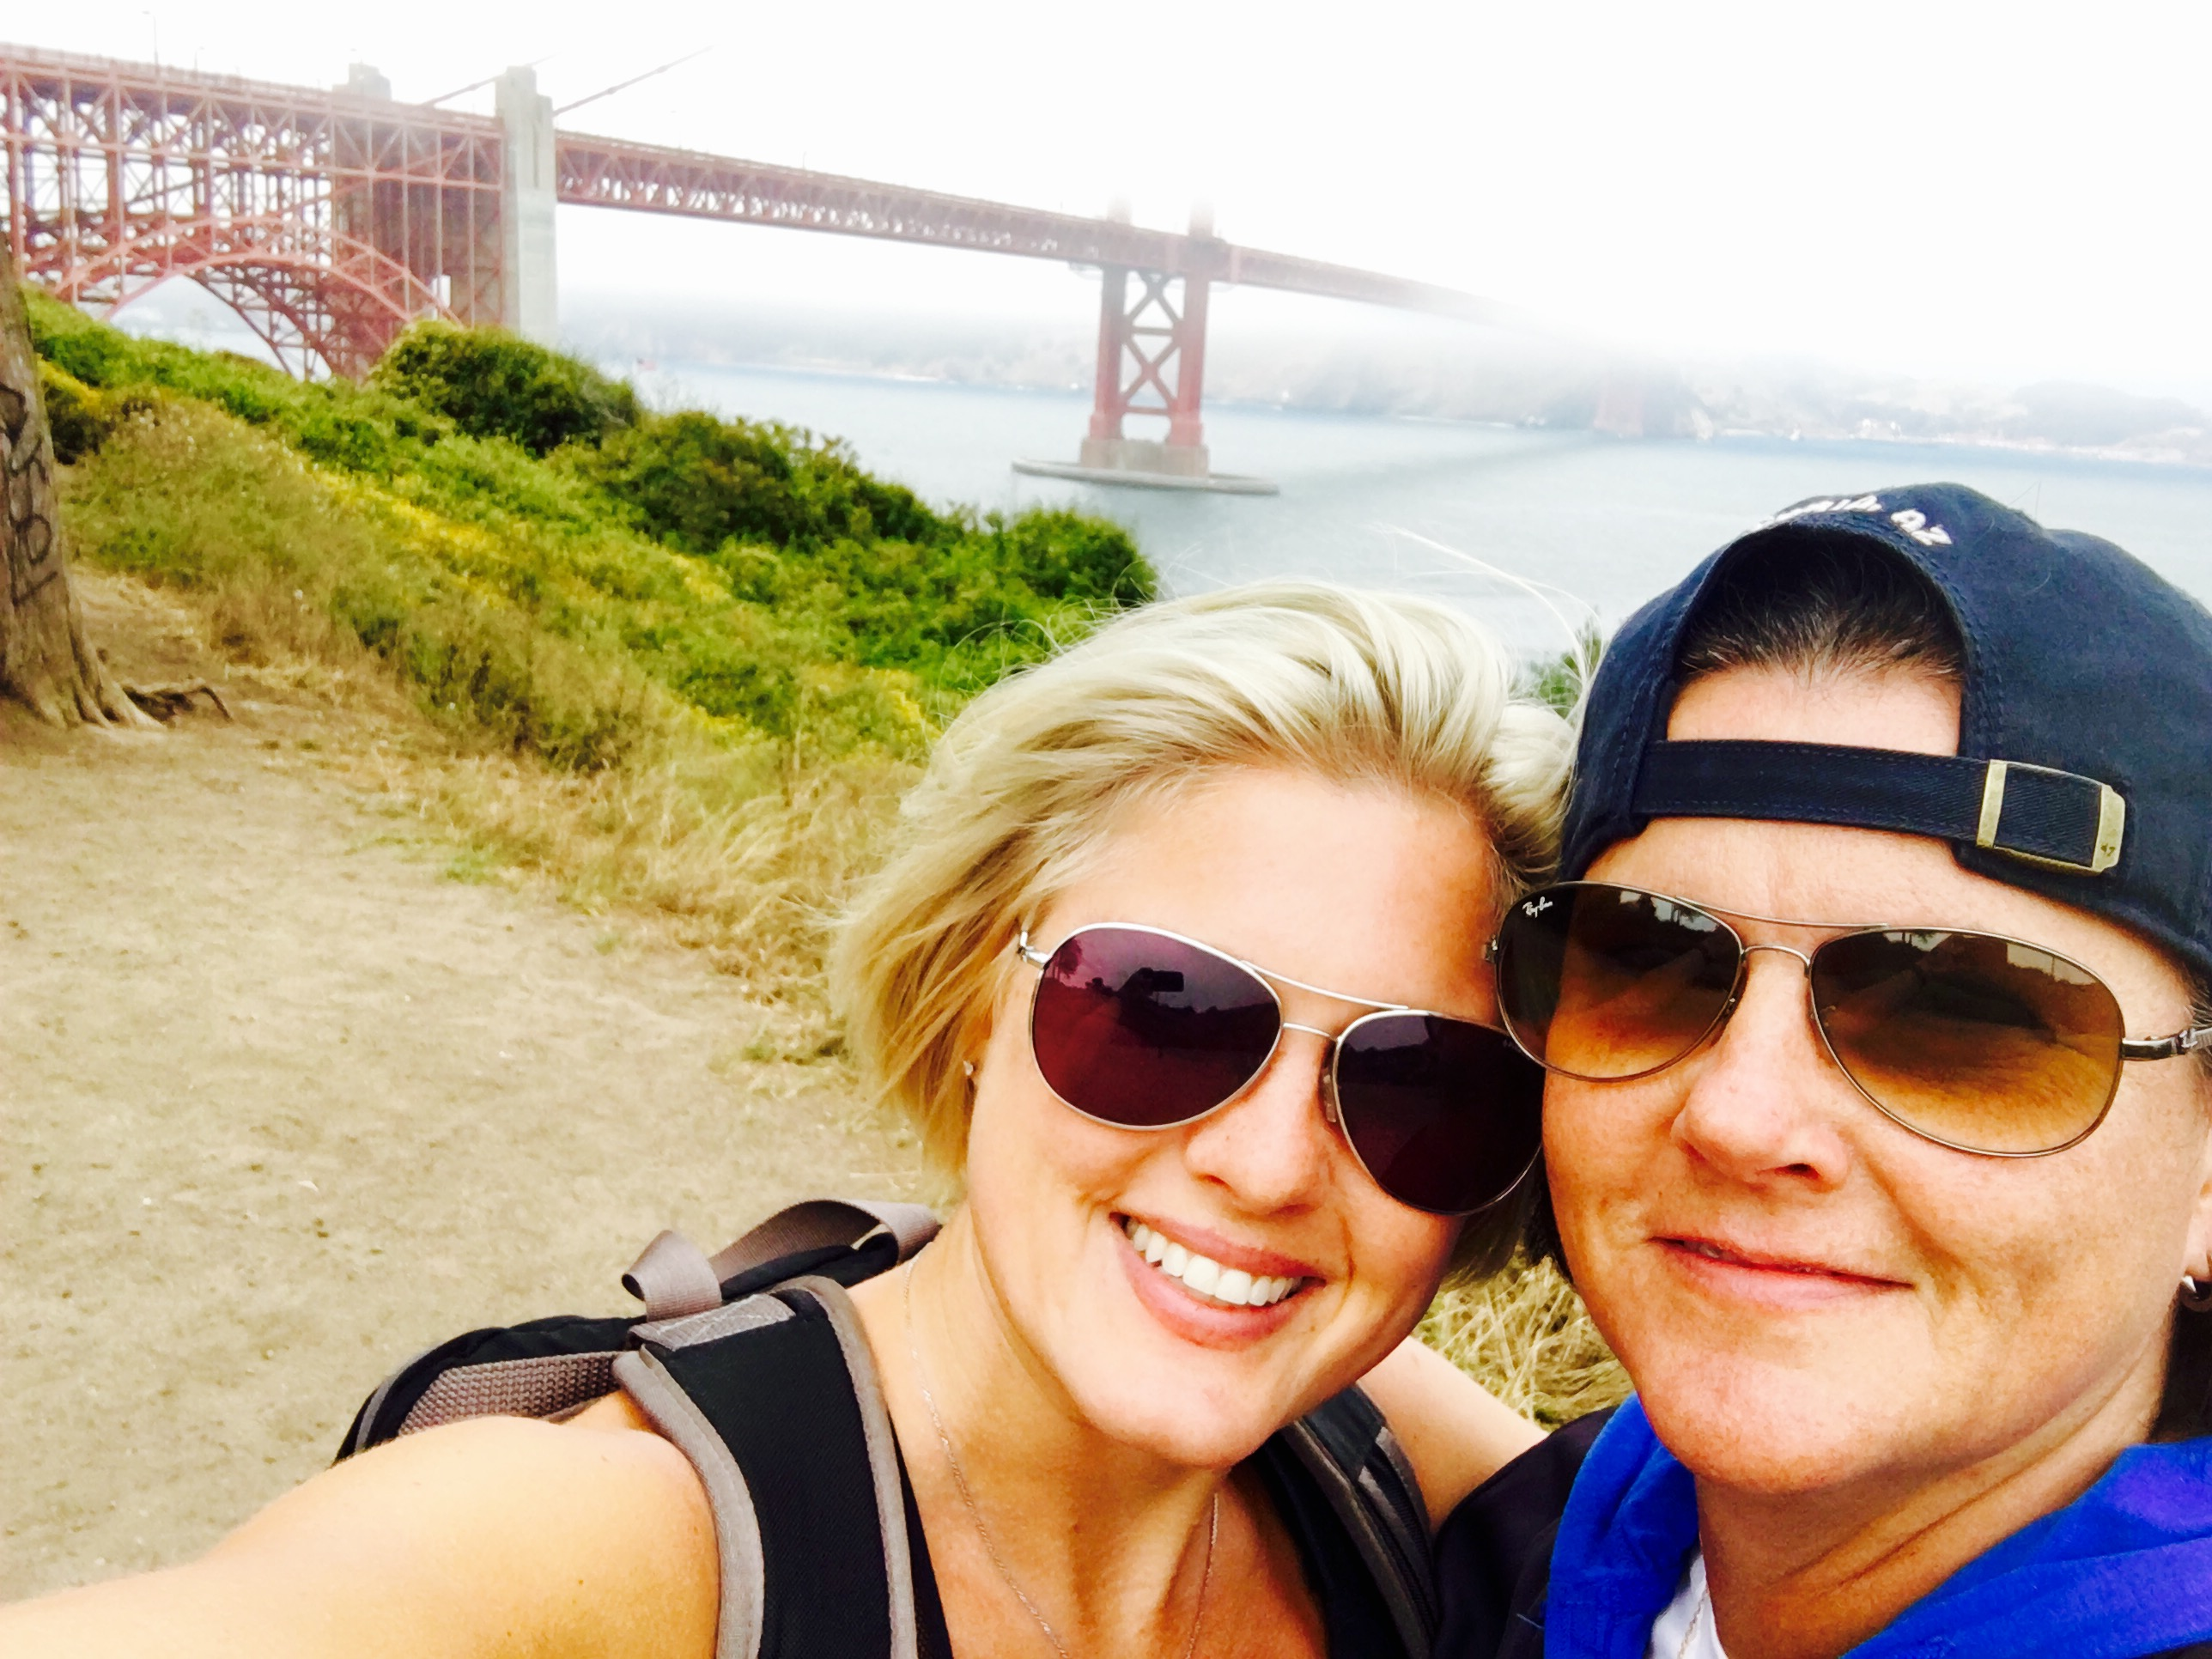 Hiking the Golden Gate Bridge